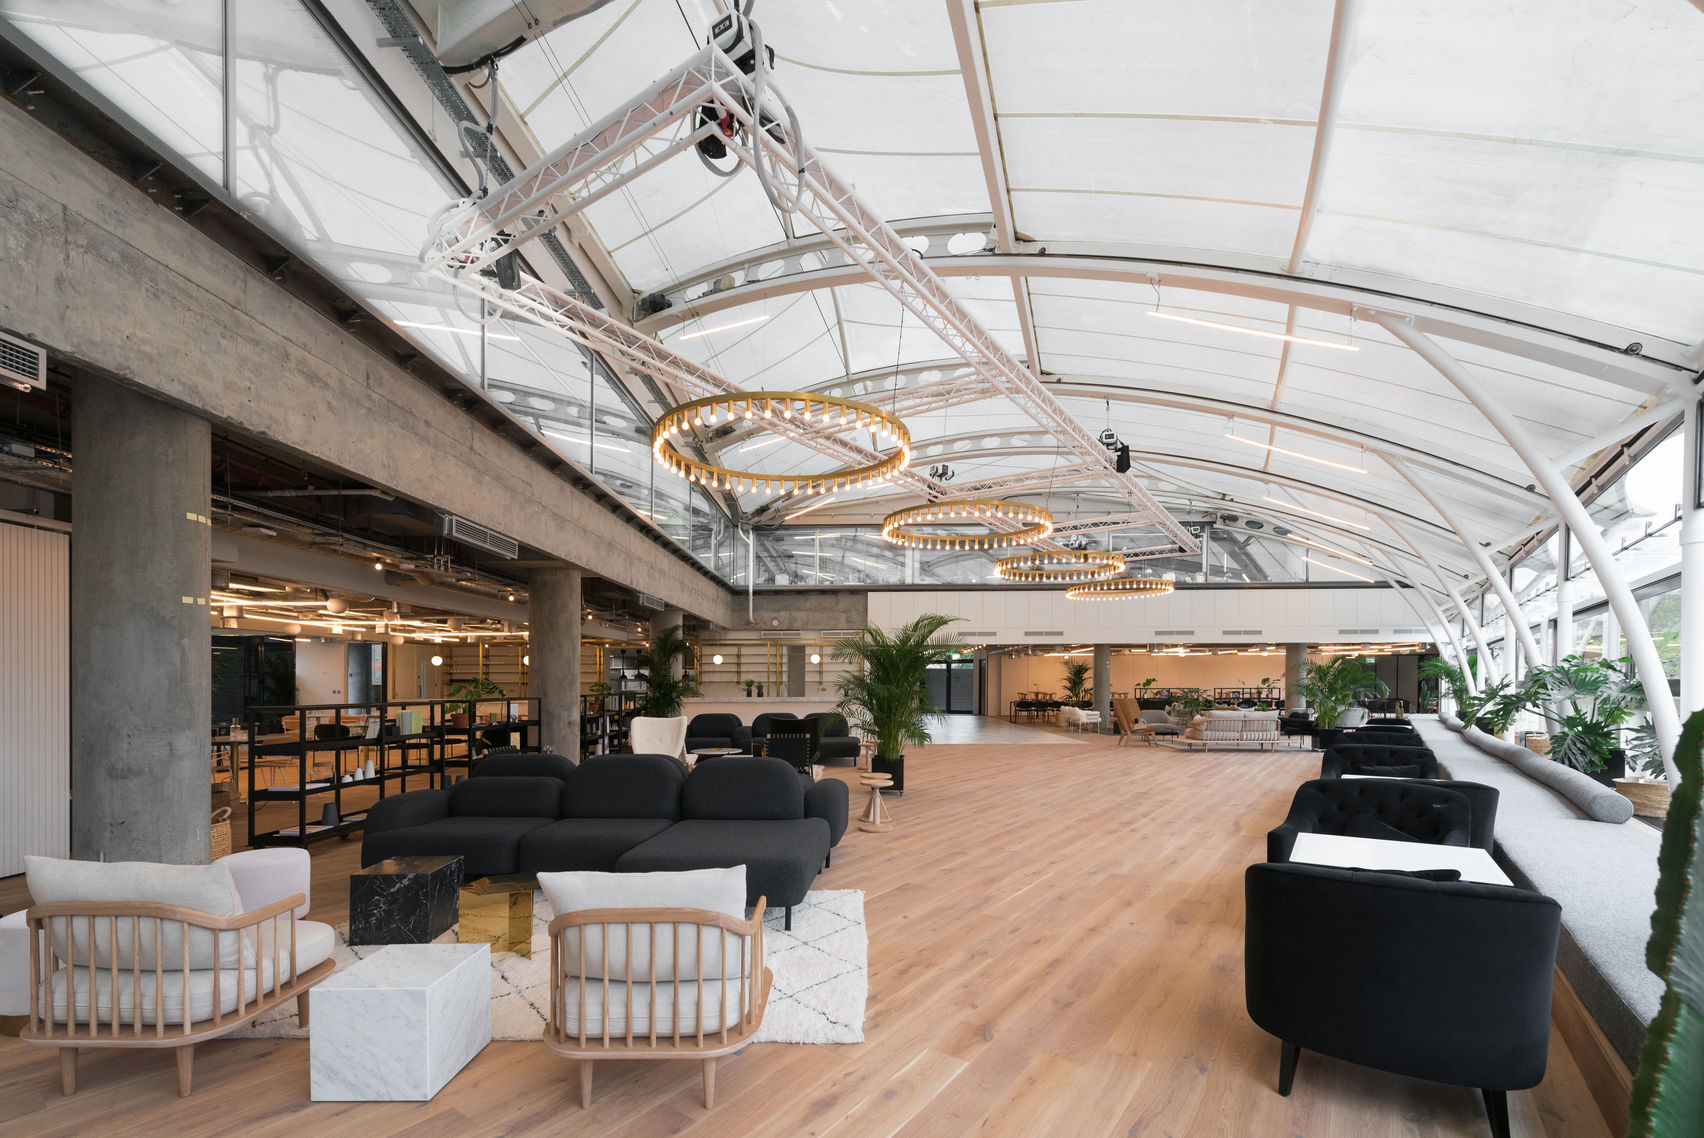 large event space with a glass ceiling and full of natural light